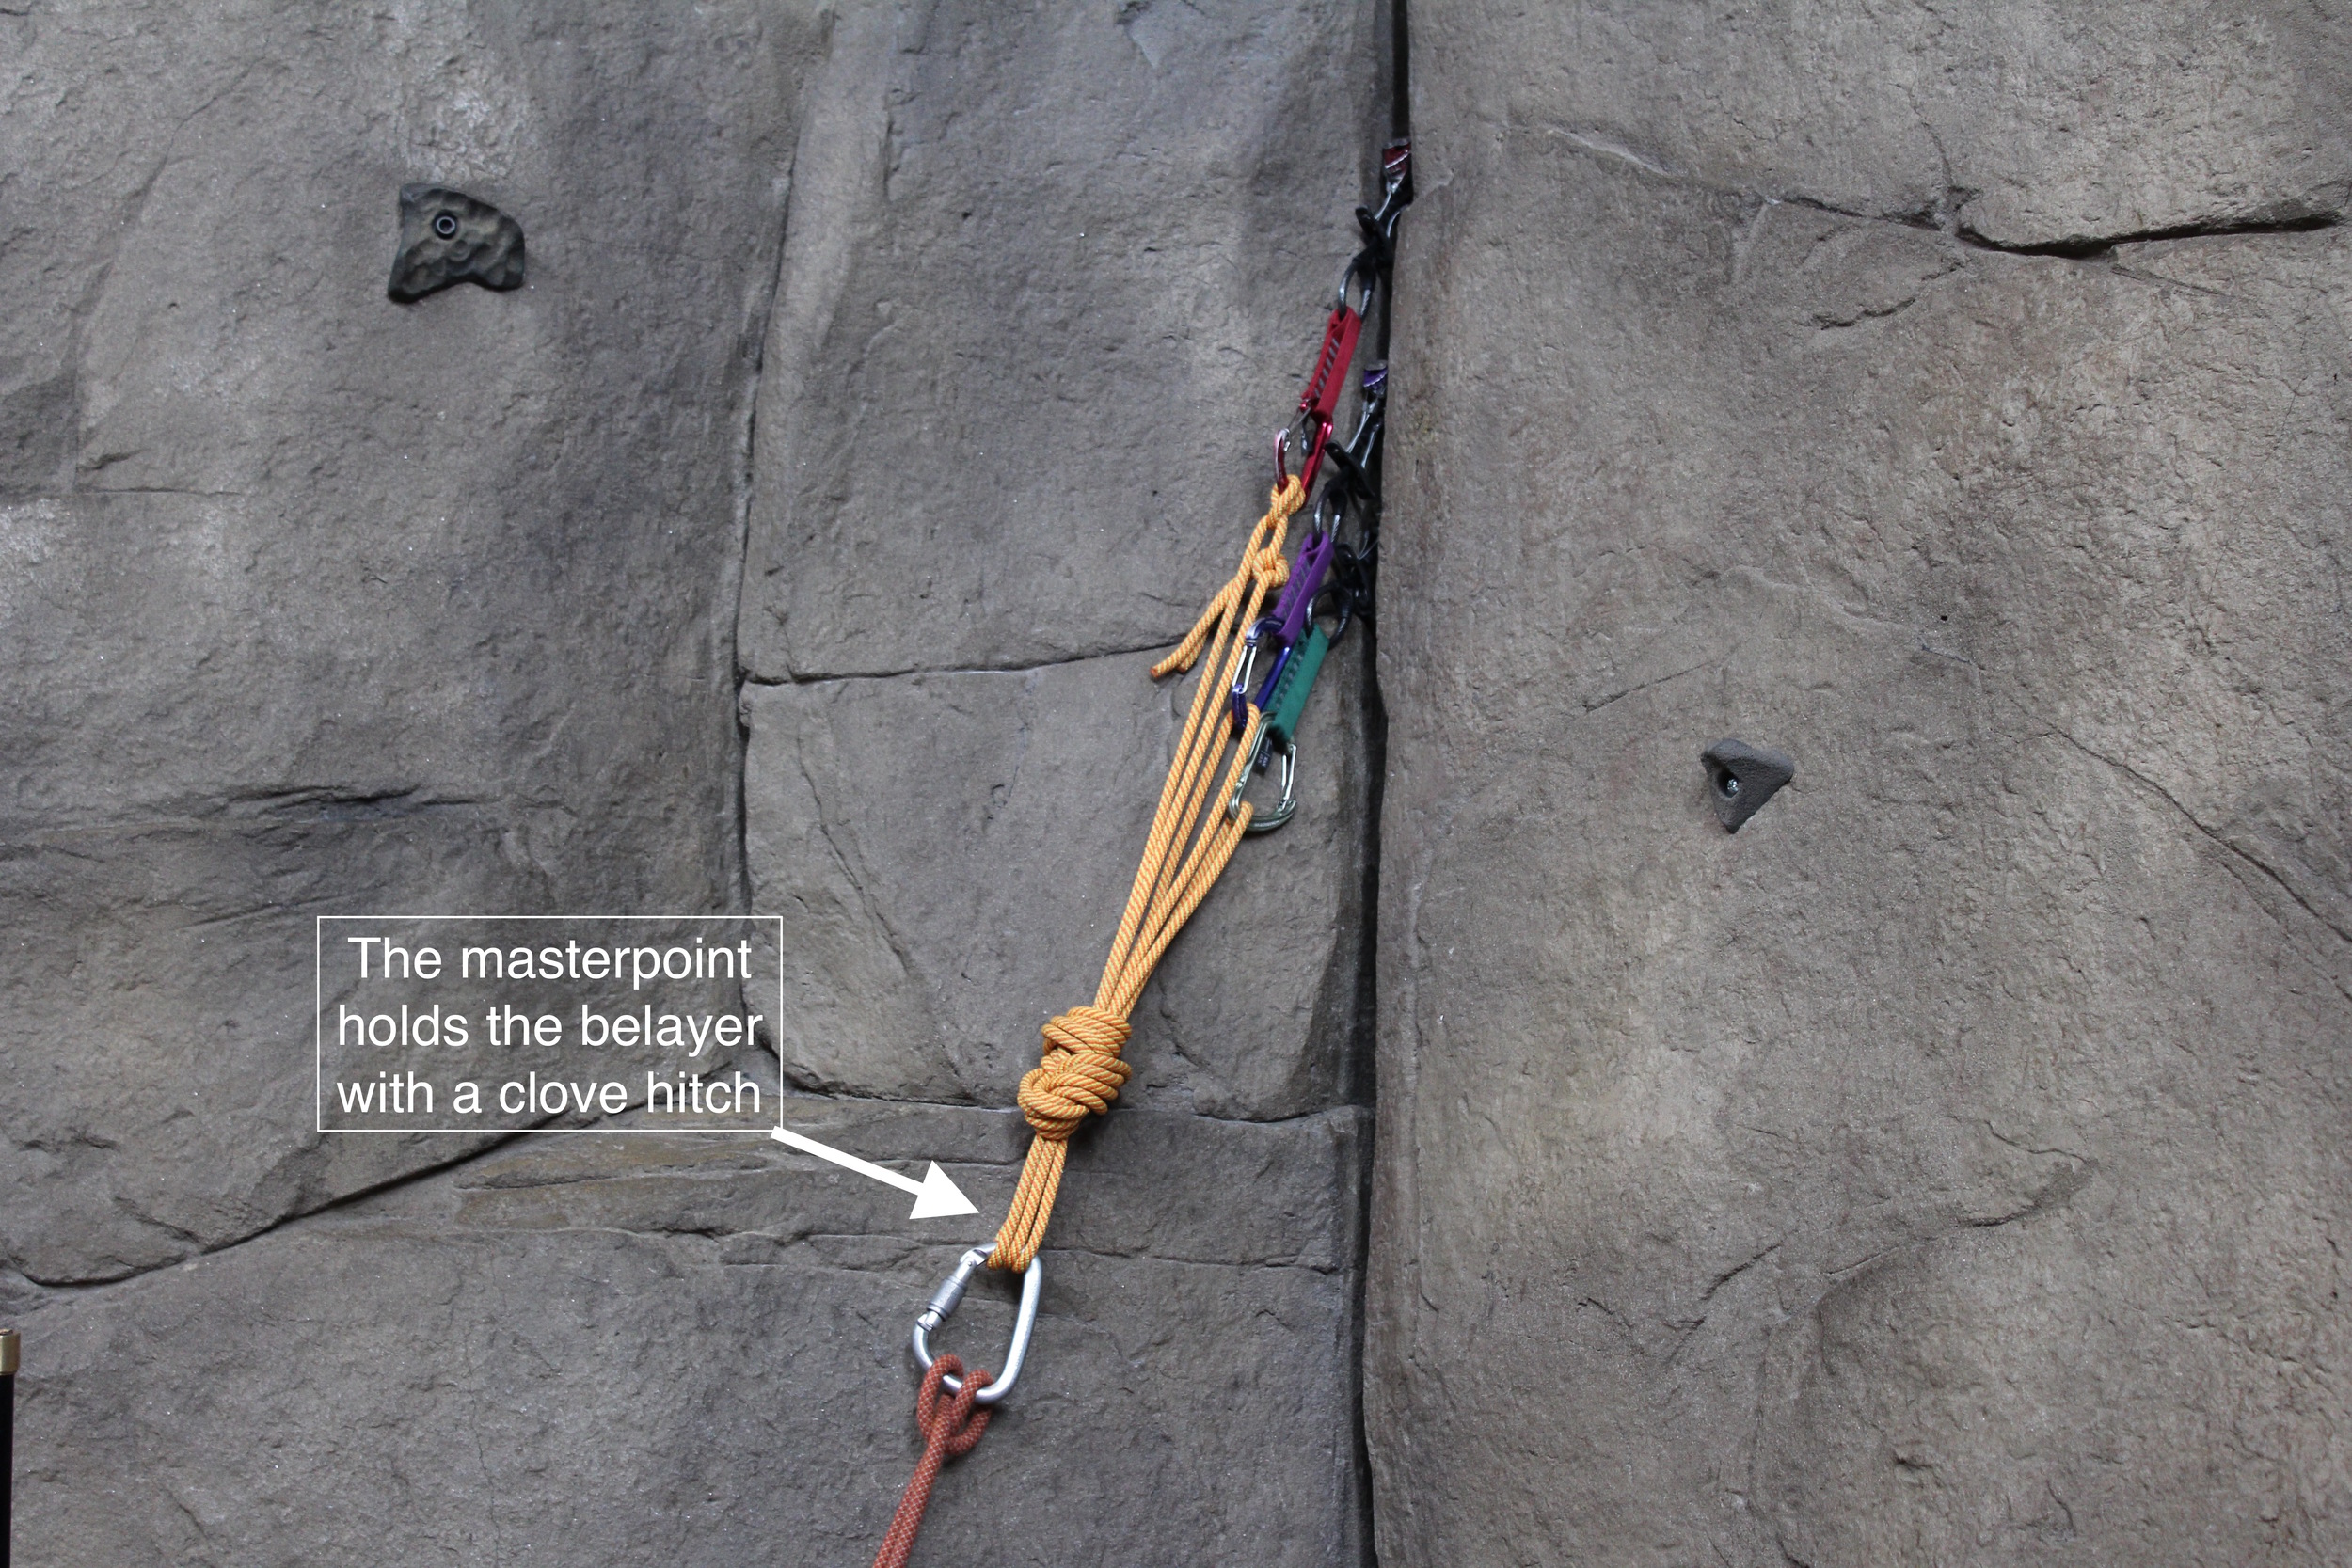 The belayer is anchored to the masterpoint because the masterpoint is the master bedroom.